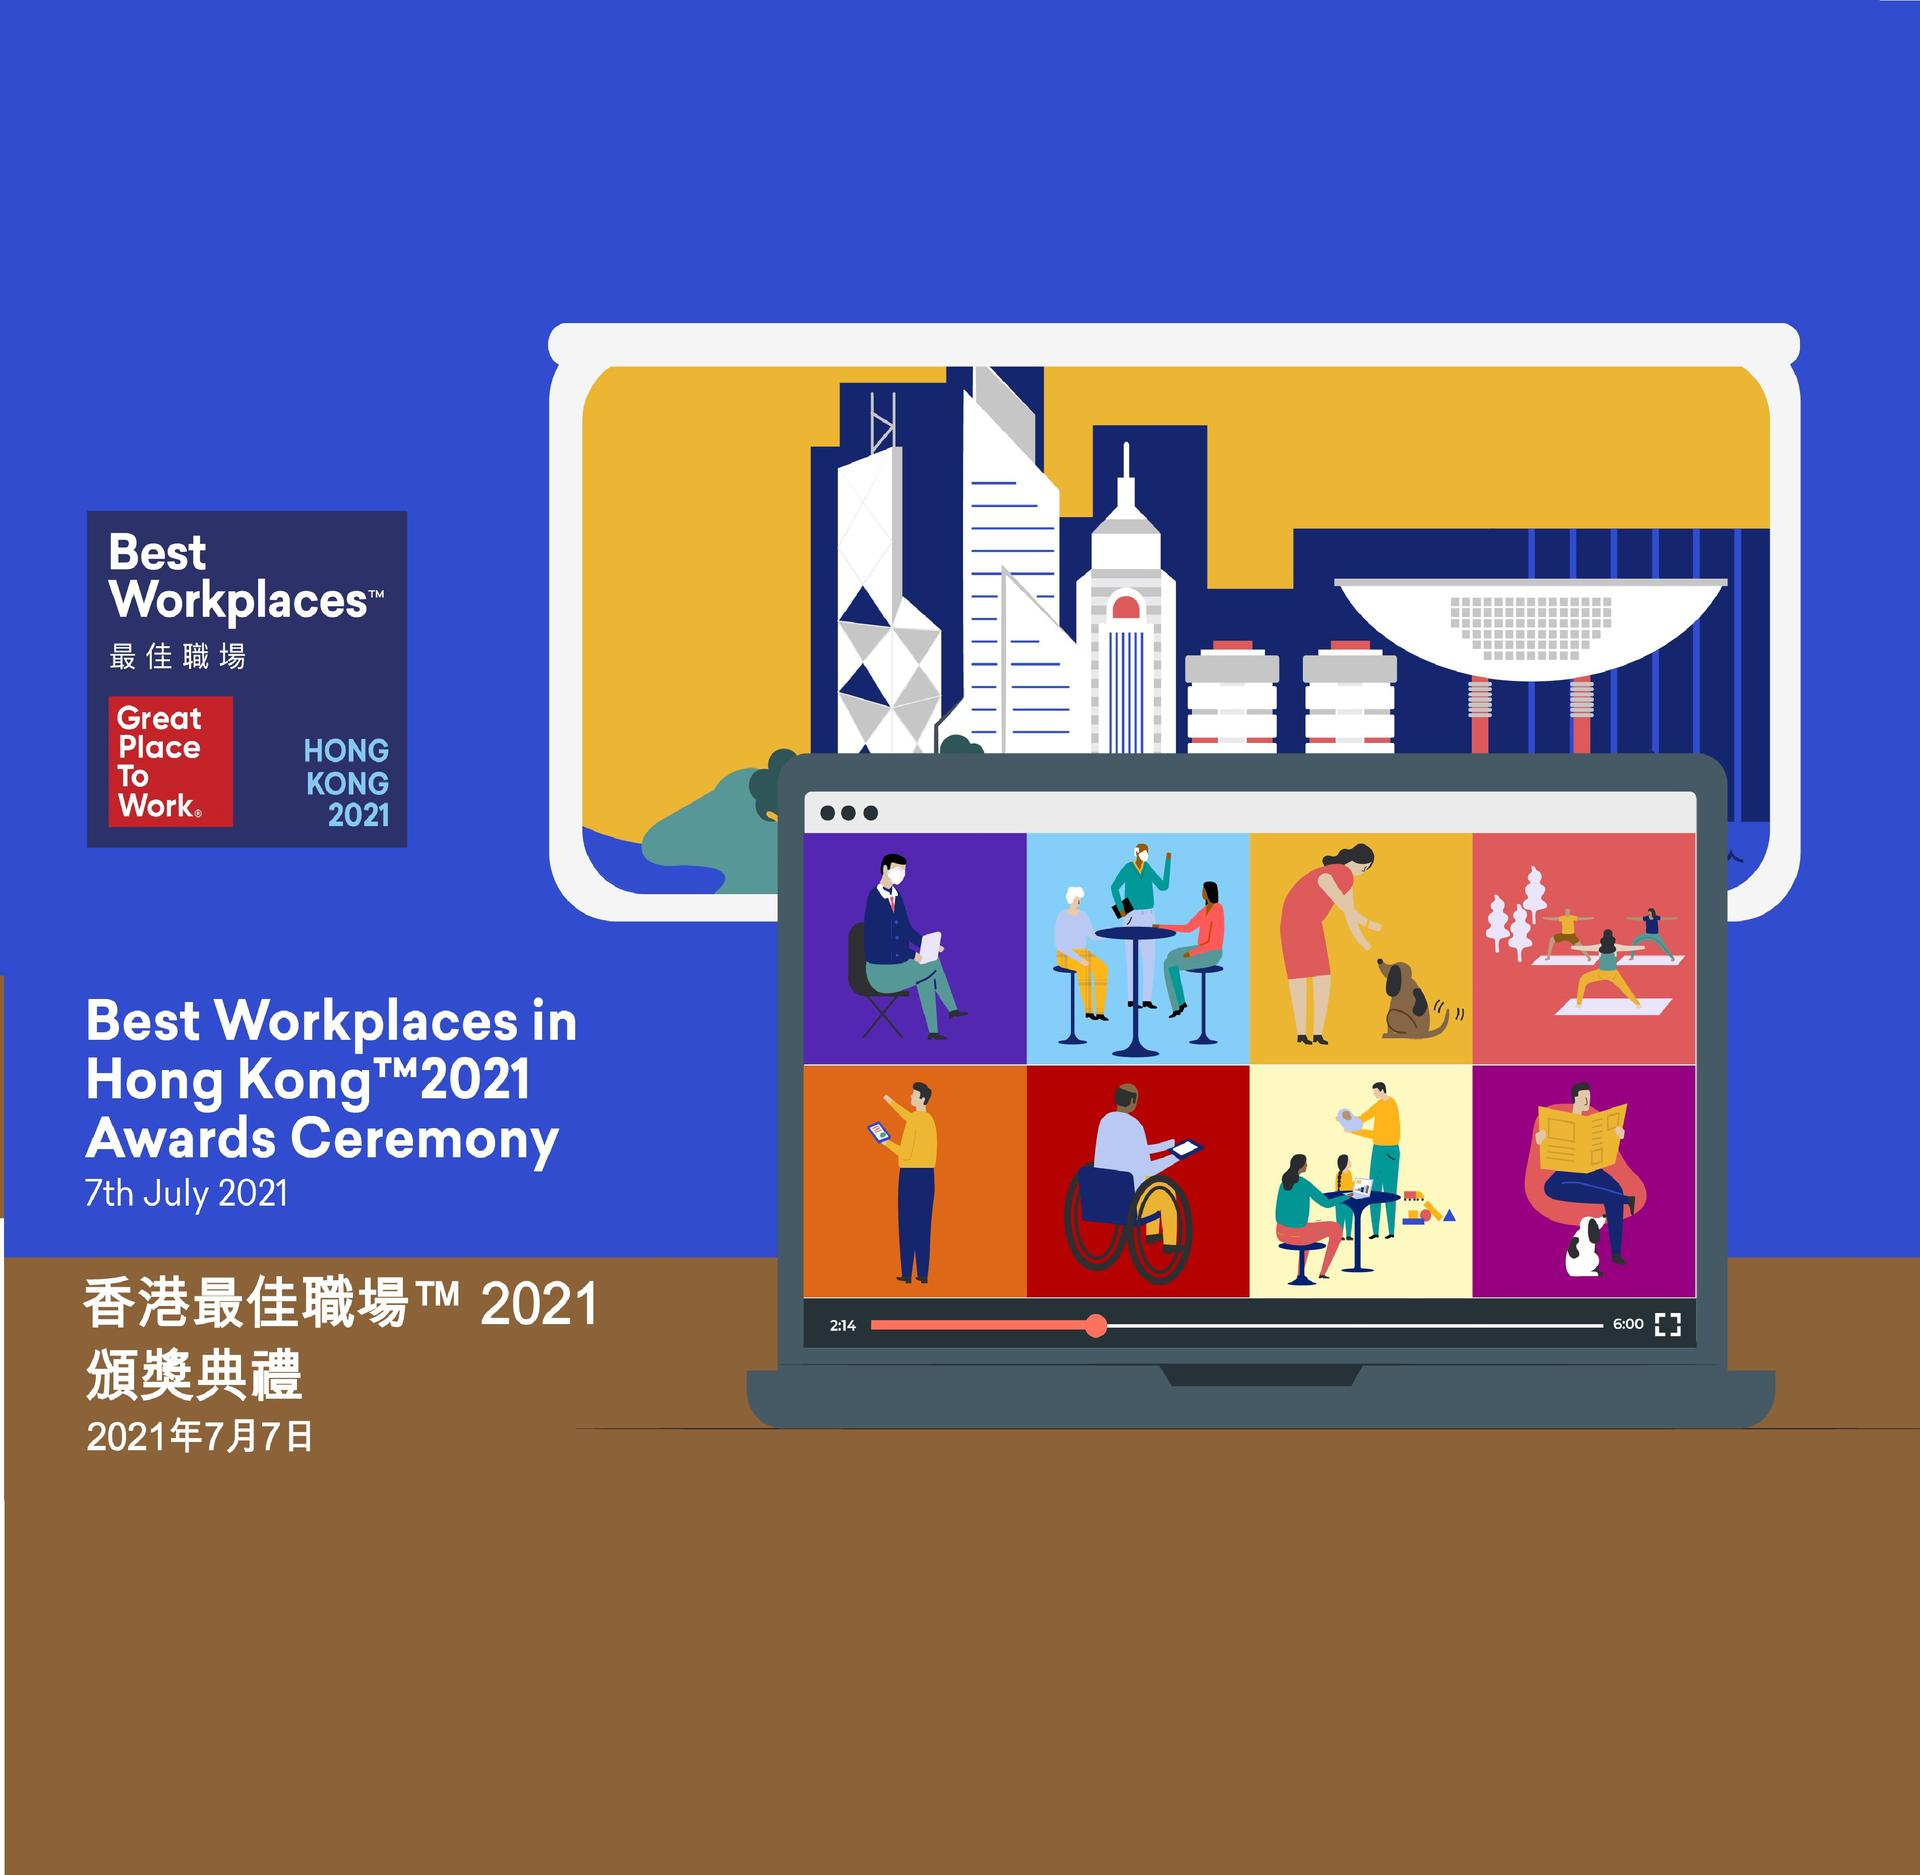 Best workplaces for Hong Kong 2021 awards ceremony